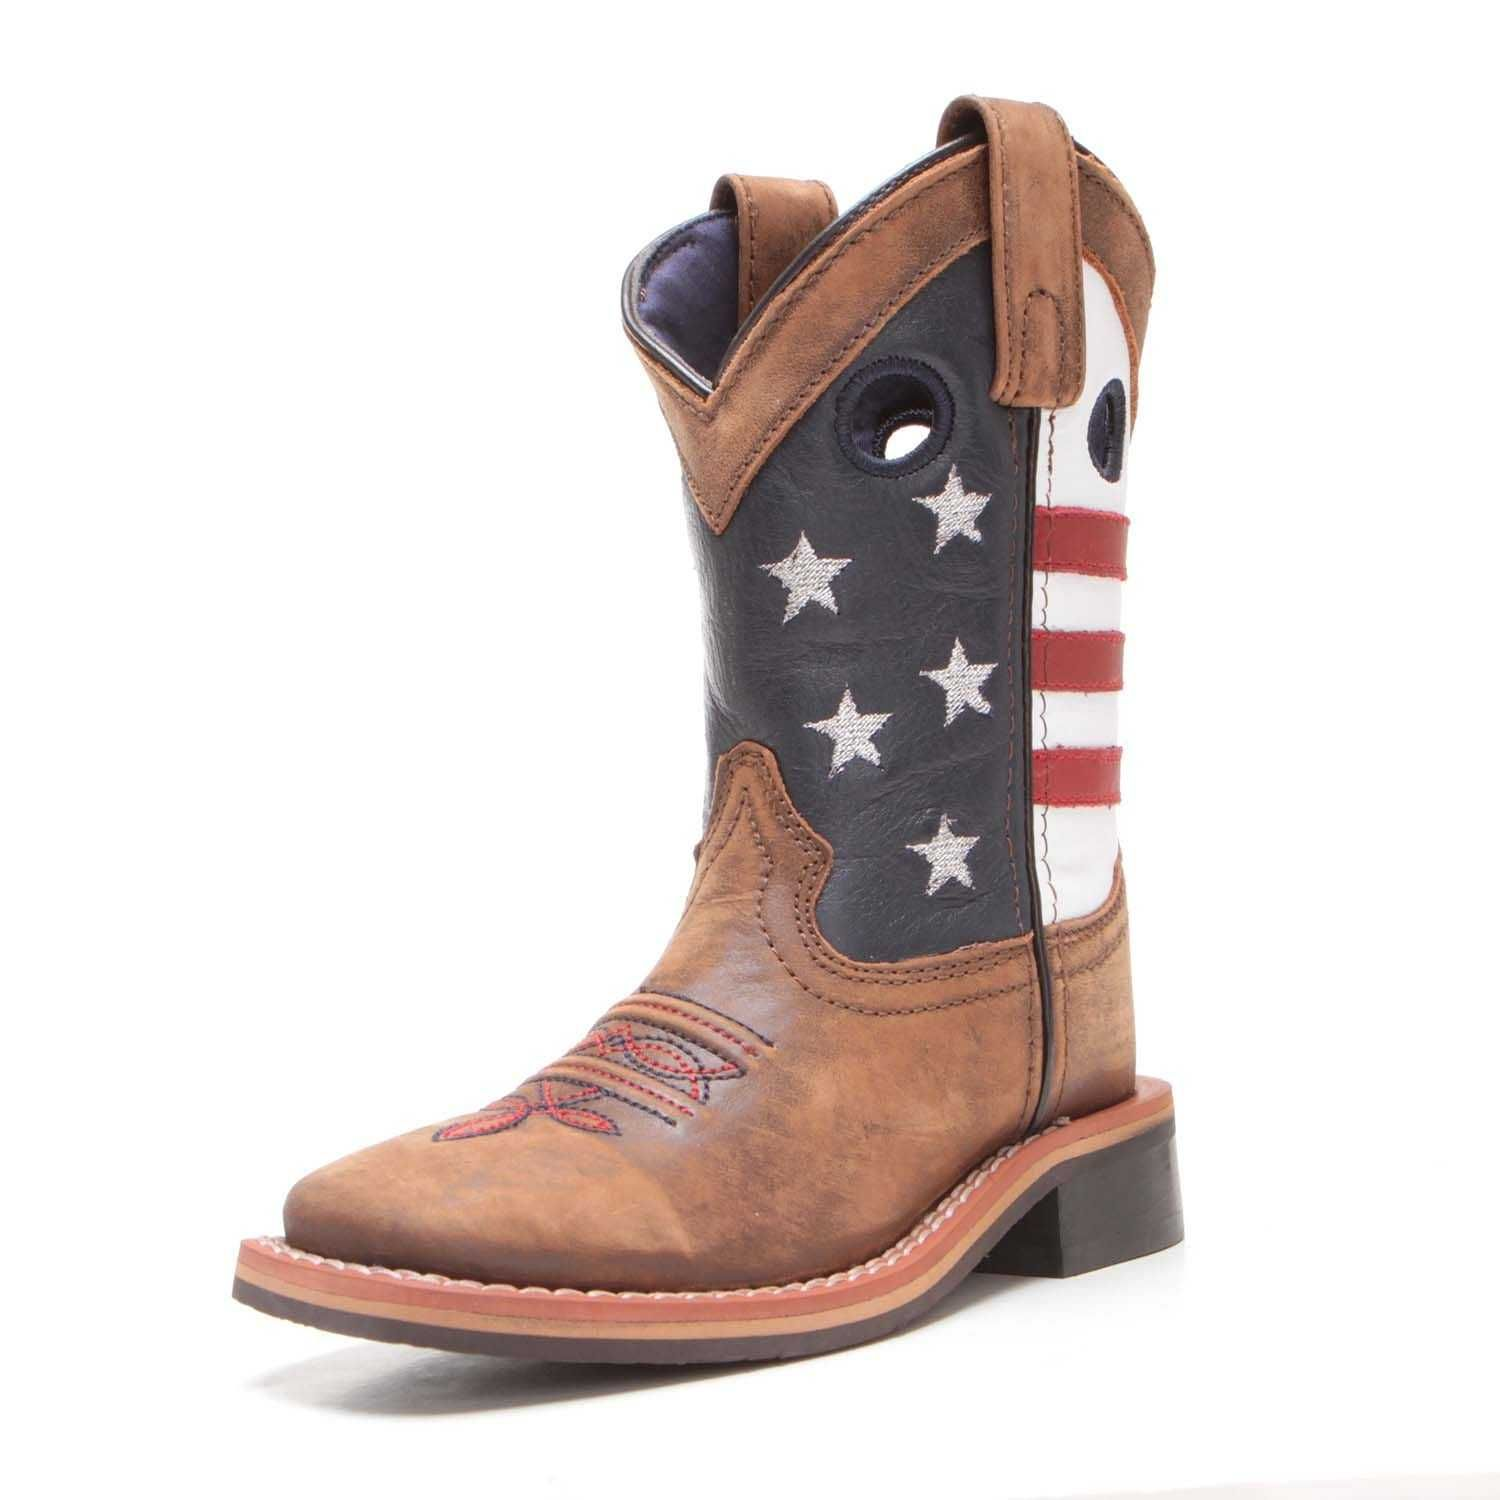 Cowboys And Cowgirls Alike Will Love To Stand Tall In The Smoky Mountain Children S Stars Stripes Cowboy Boots Kids Cowboy Boots Boots Leather Cowgirl Boots